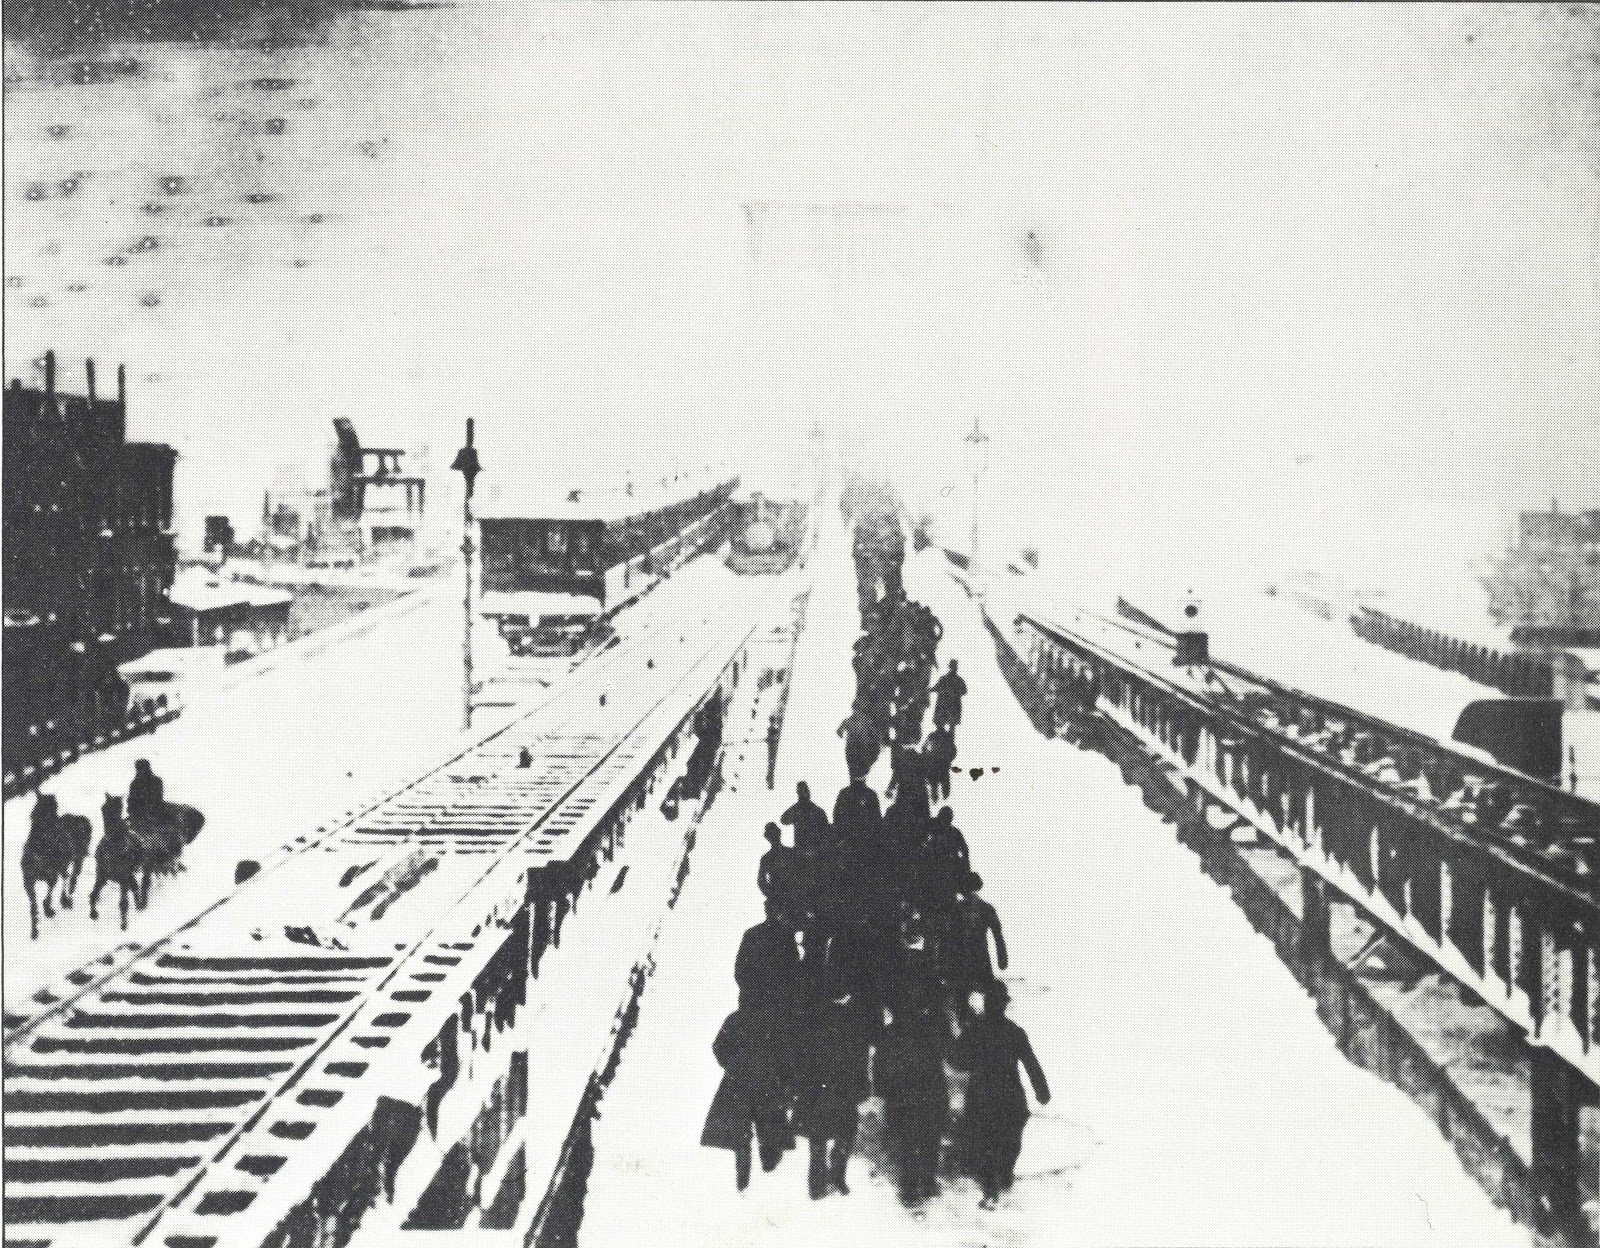 history of the brooklyn bridge • the brooklyn bridge was the first suspension bridge to use steel rather than iron for its cables • cable cars ran in nyc from 1883 to 1909, with the first line opening on the bridge elevated trains ran on the bridge until 1944 trolleys until 1954.